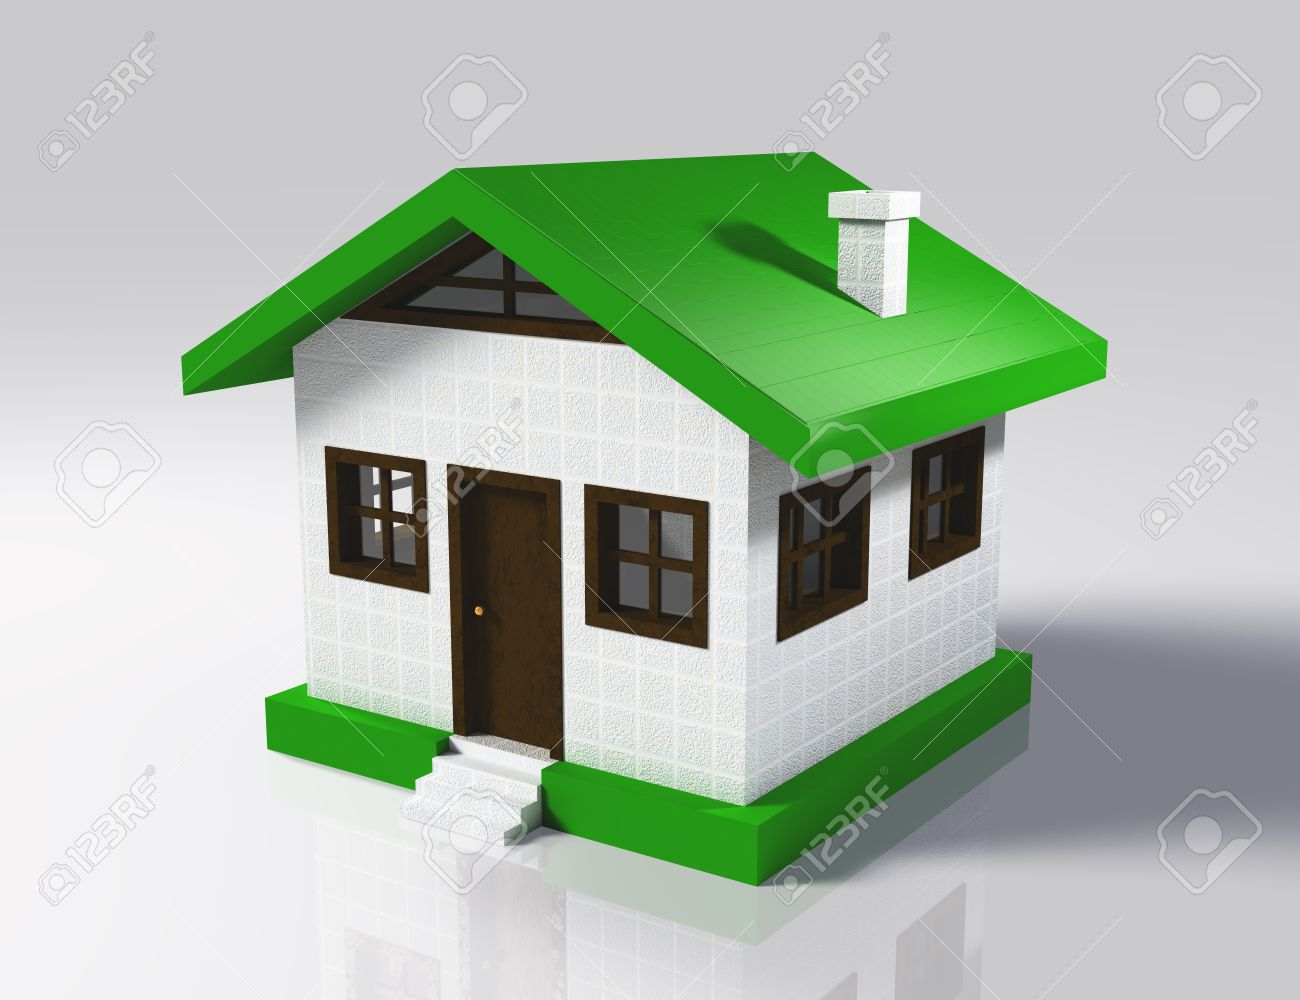 Superb A 3D Rendering Of A Small Model Of House With Base And Roof That Are Green